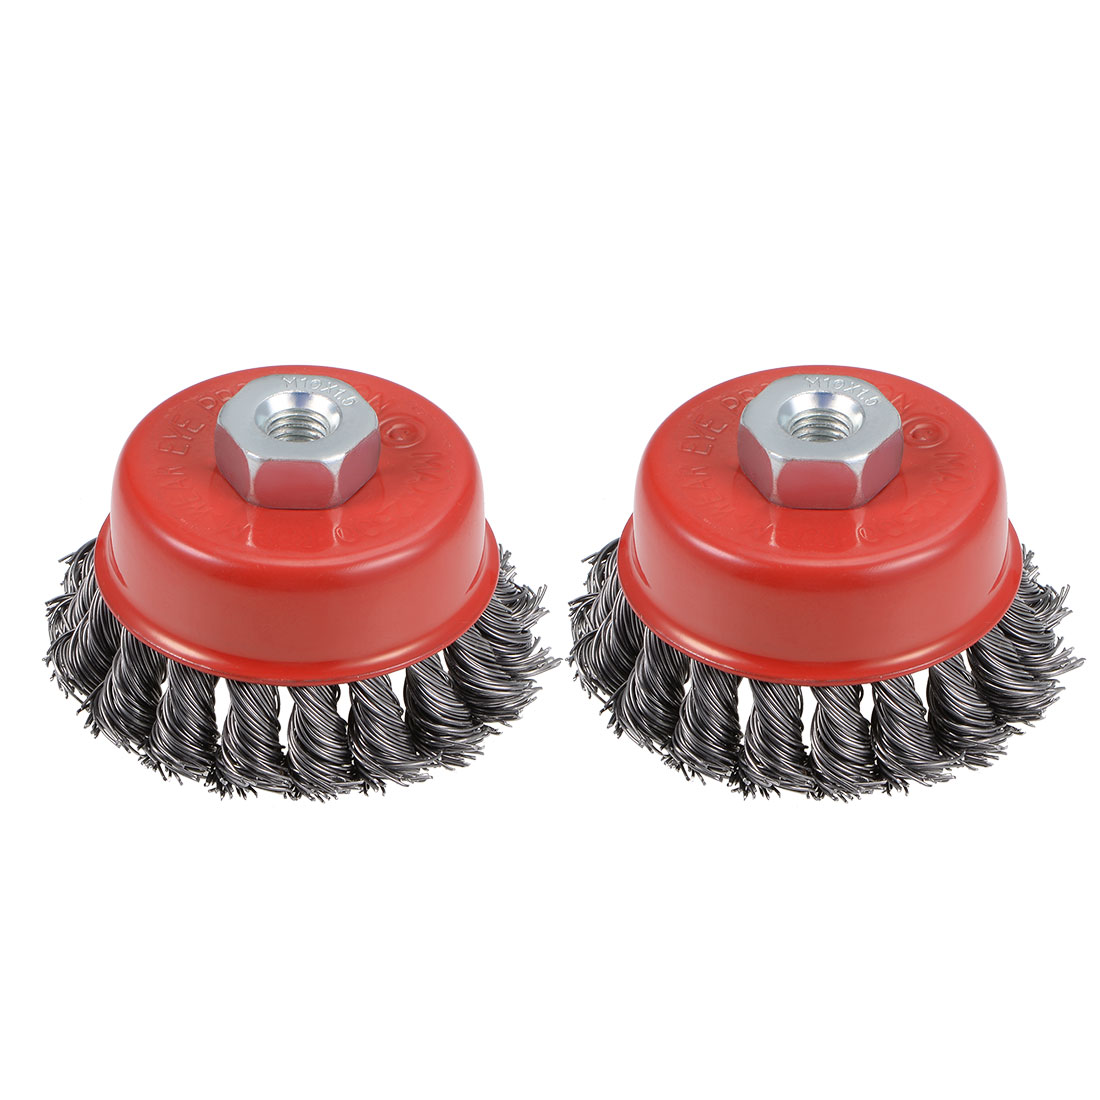 3-Inch Wire Cup Brush Twist Knotted Crimped Steel with M10 Threaded Hole 2 Pcs